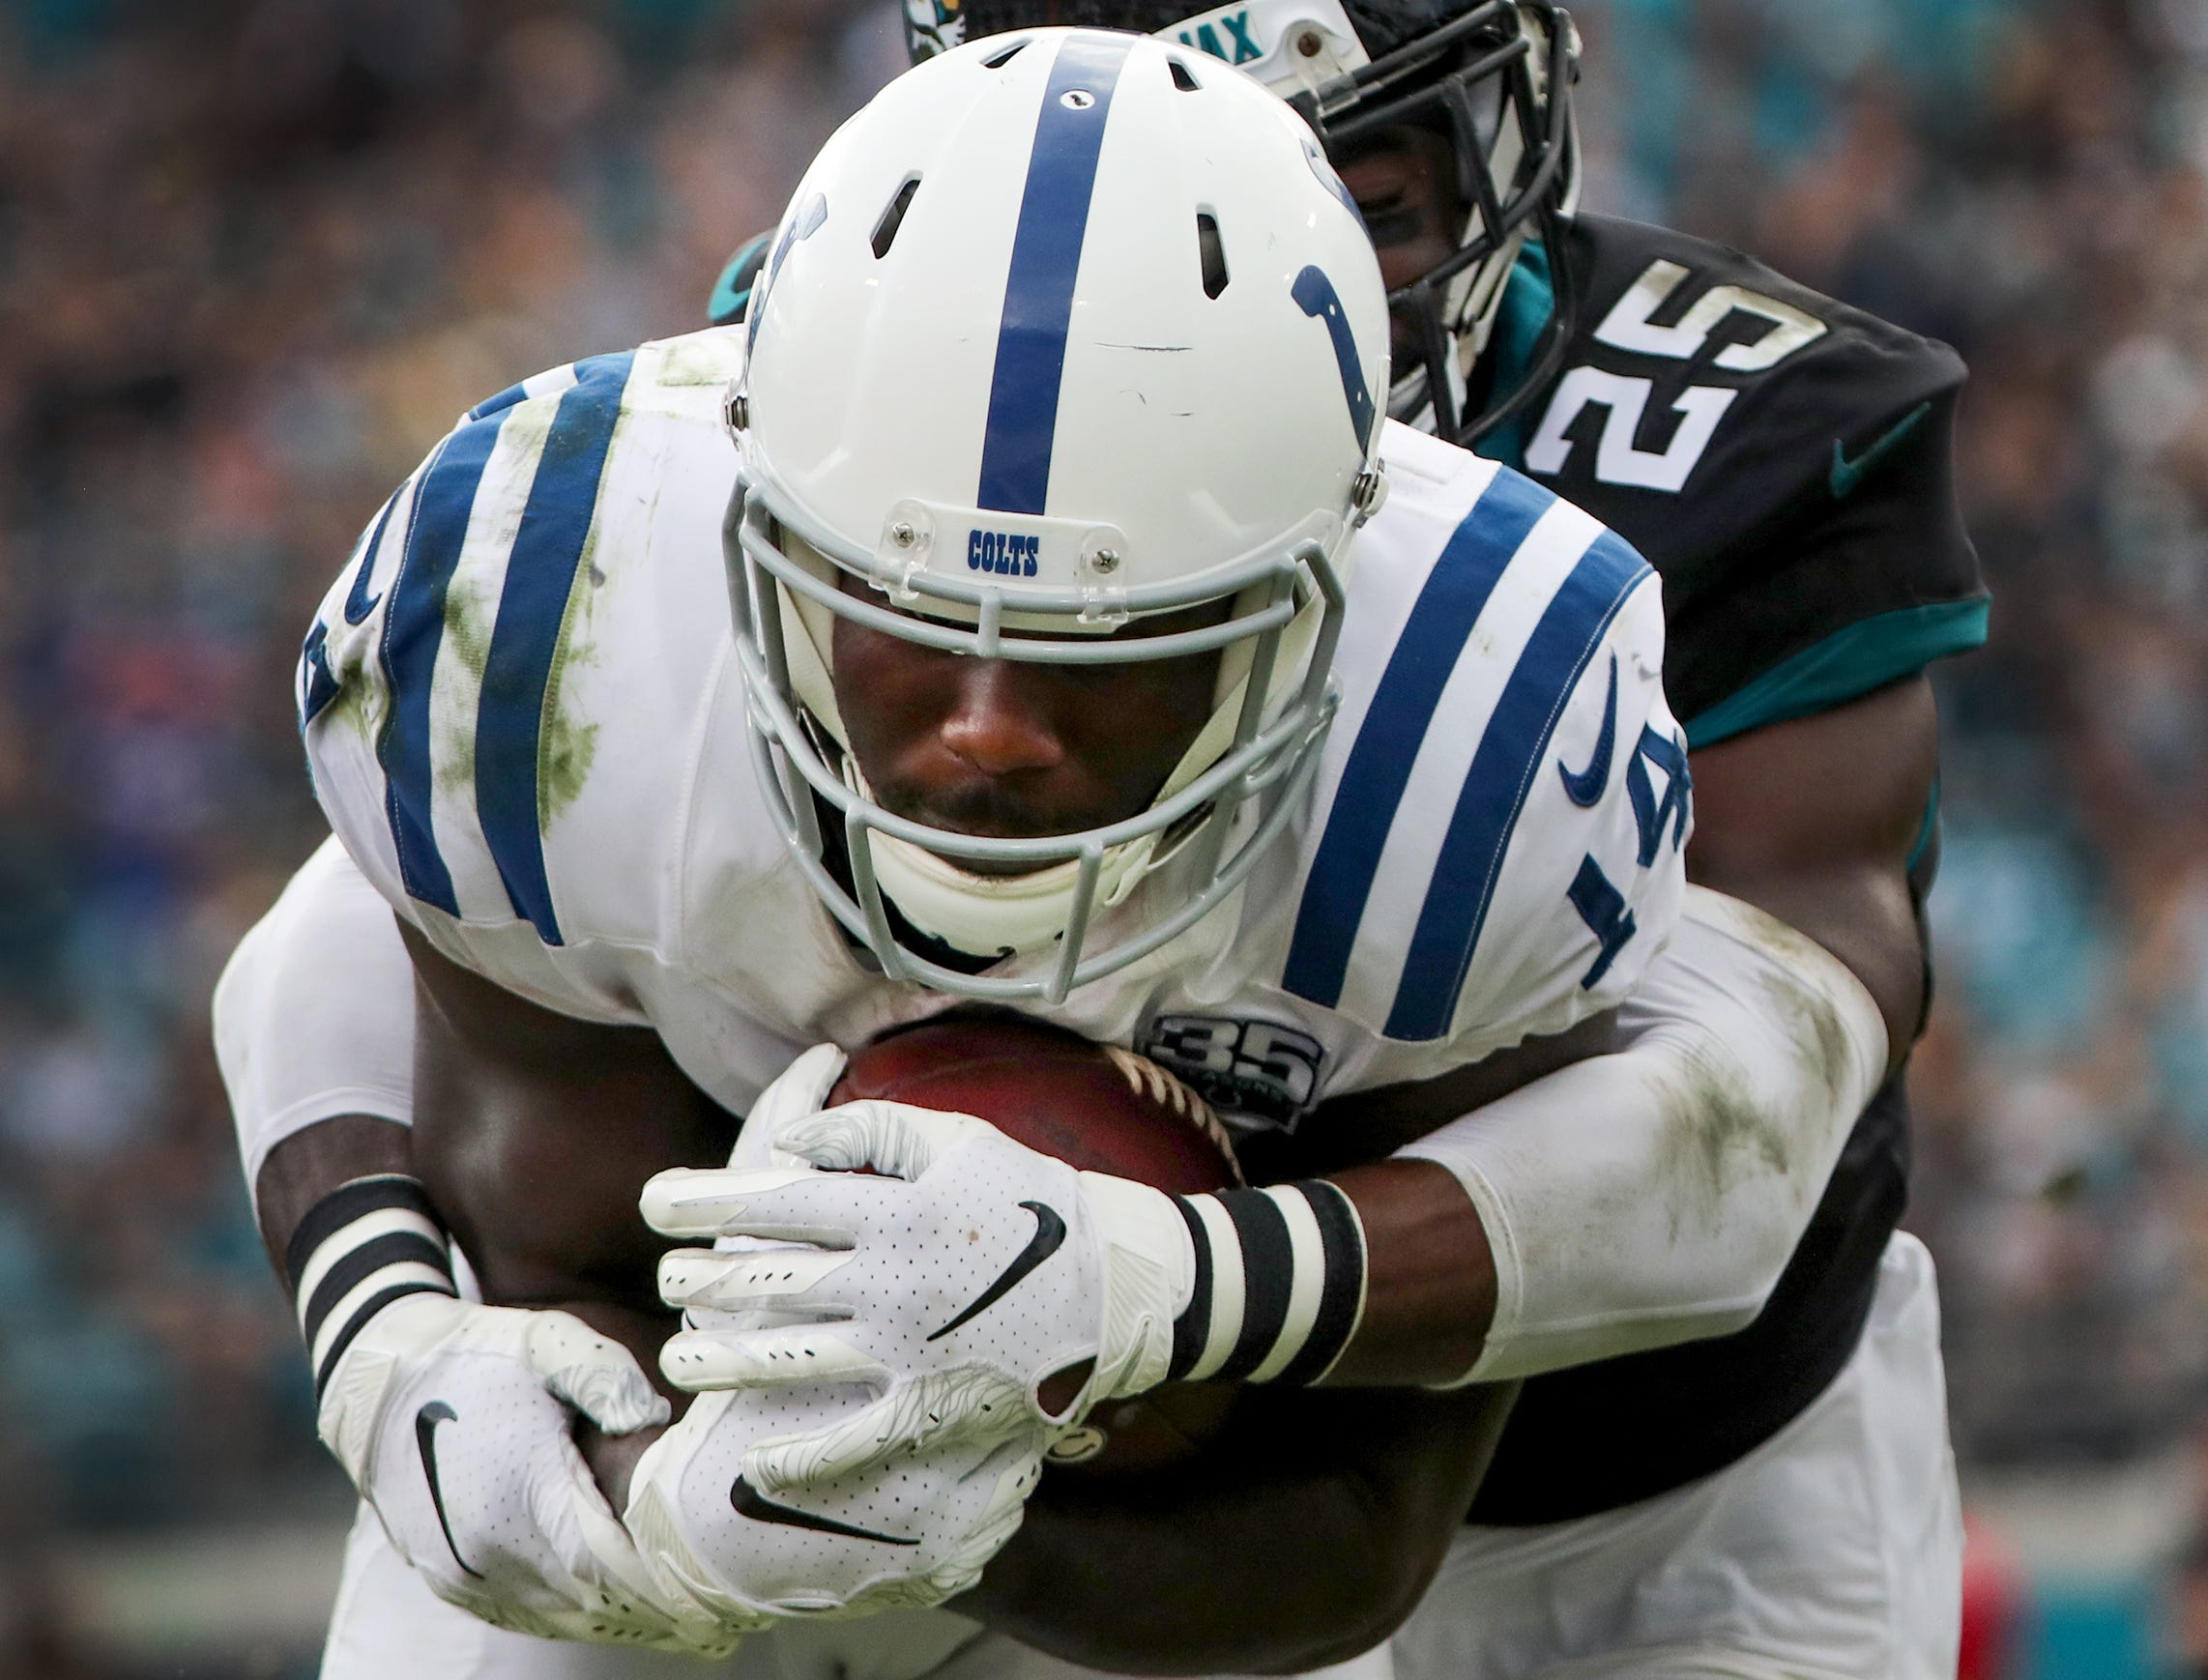 Indianapolis Colts wide receiver Zach Pascal (14) is hit by Jacksonville Jaguars defensive back D.J. Hayden (25) in the second half of their game at TIAA Bank Field on Thursday, Dec. 2, 2018. The Jacksonville Jaguars defeated the Colts 6-0.